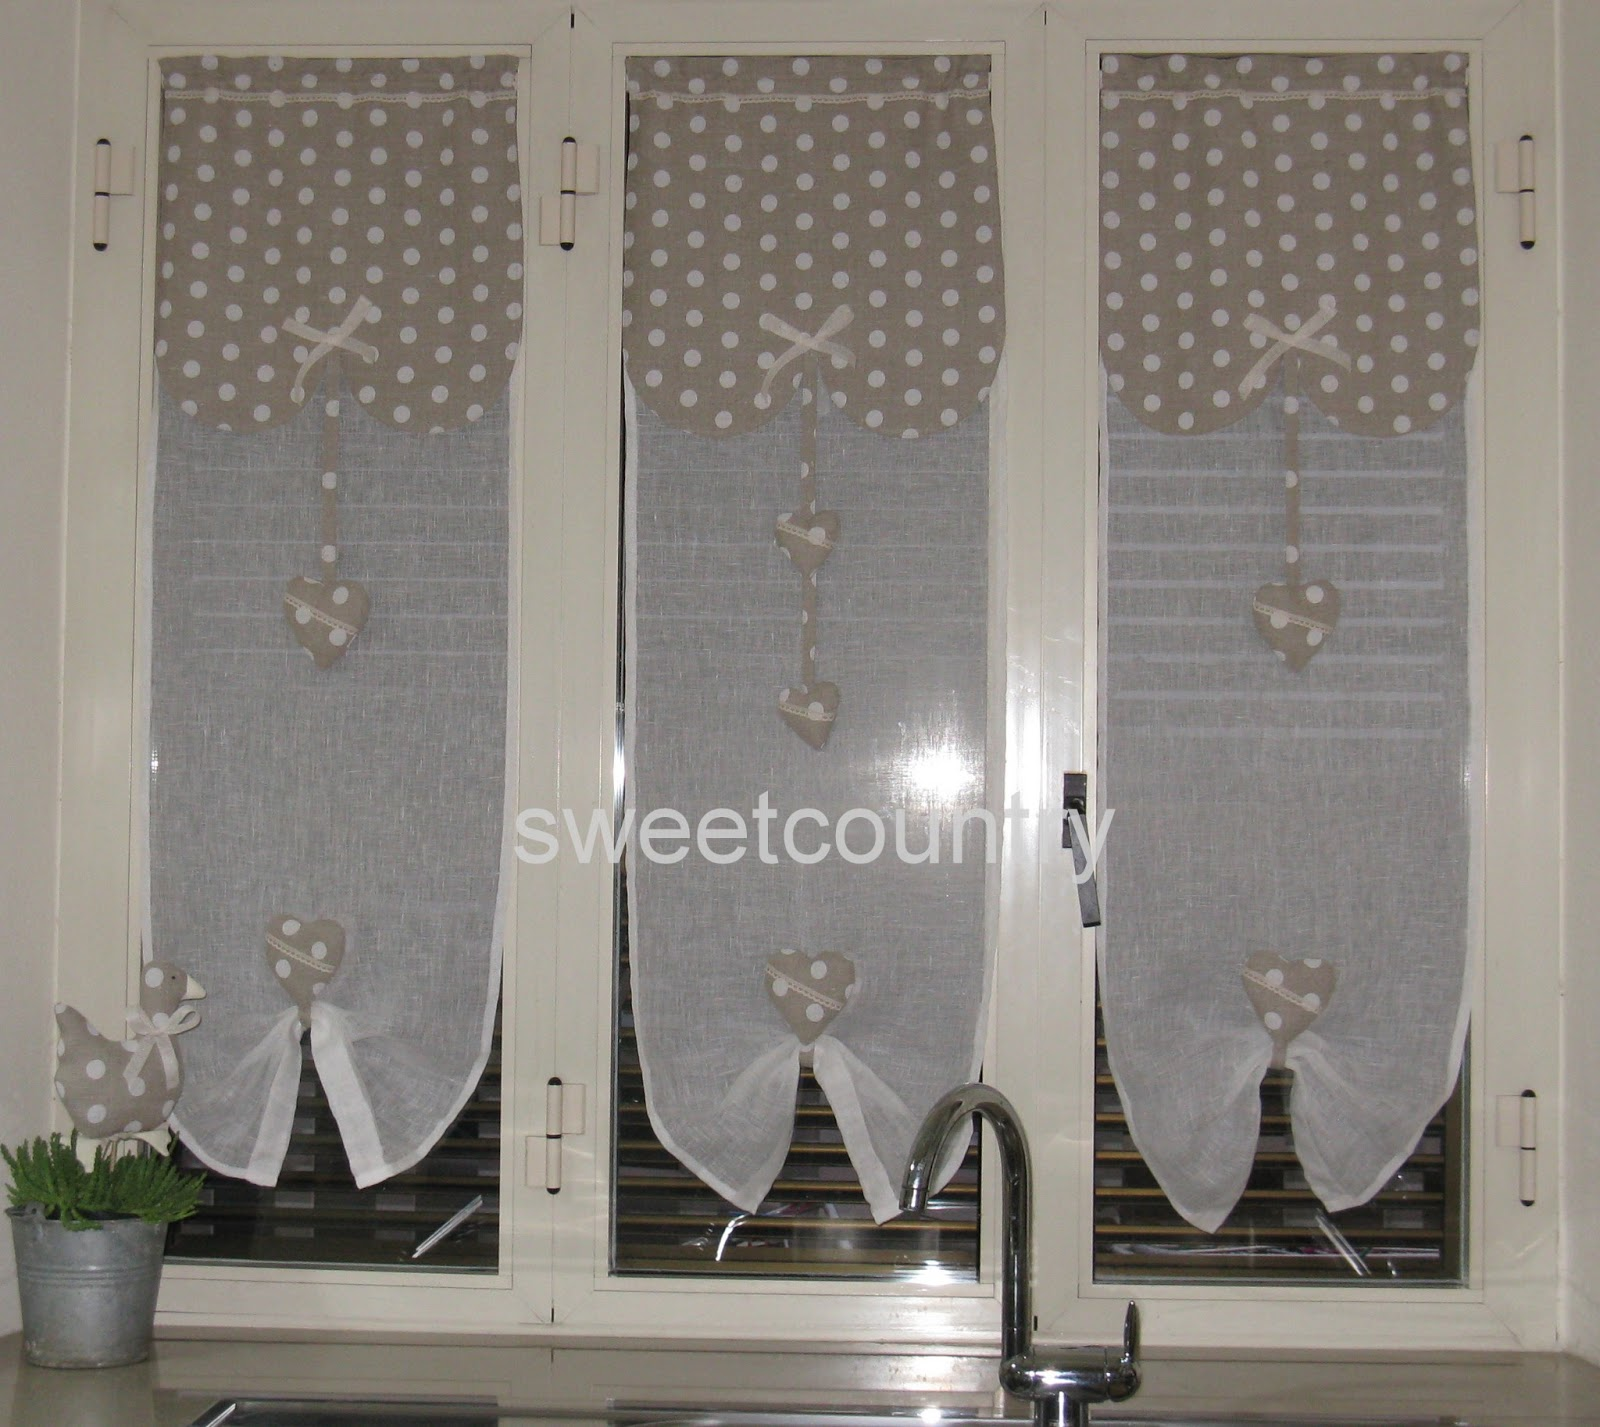 Sweetcountry tende country - Tende da cucina per porta finestra ...